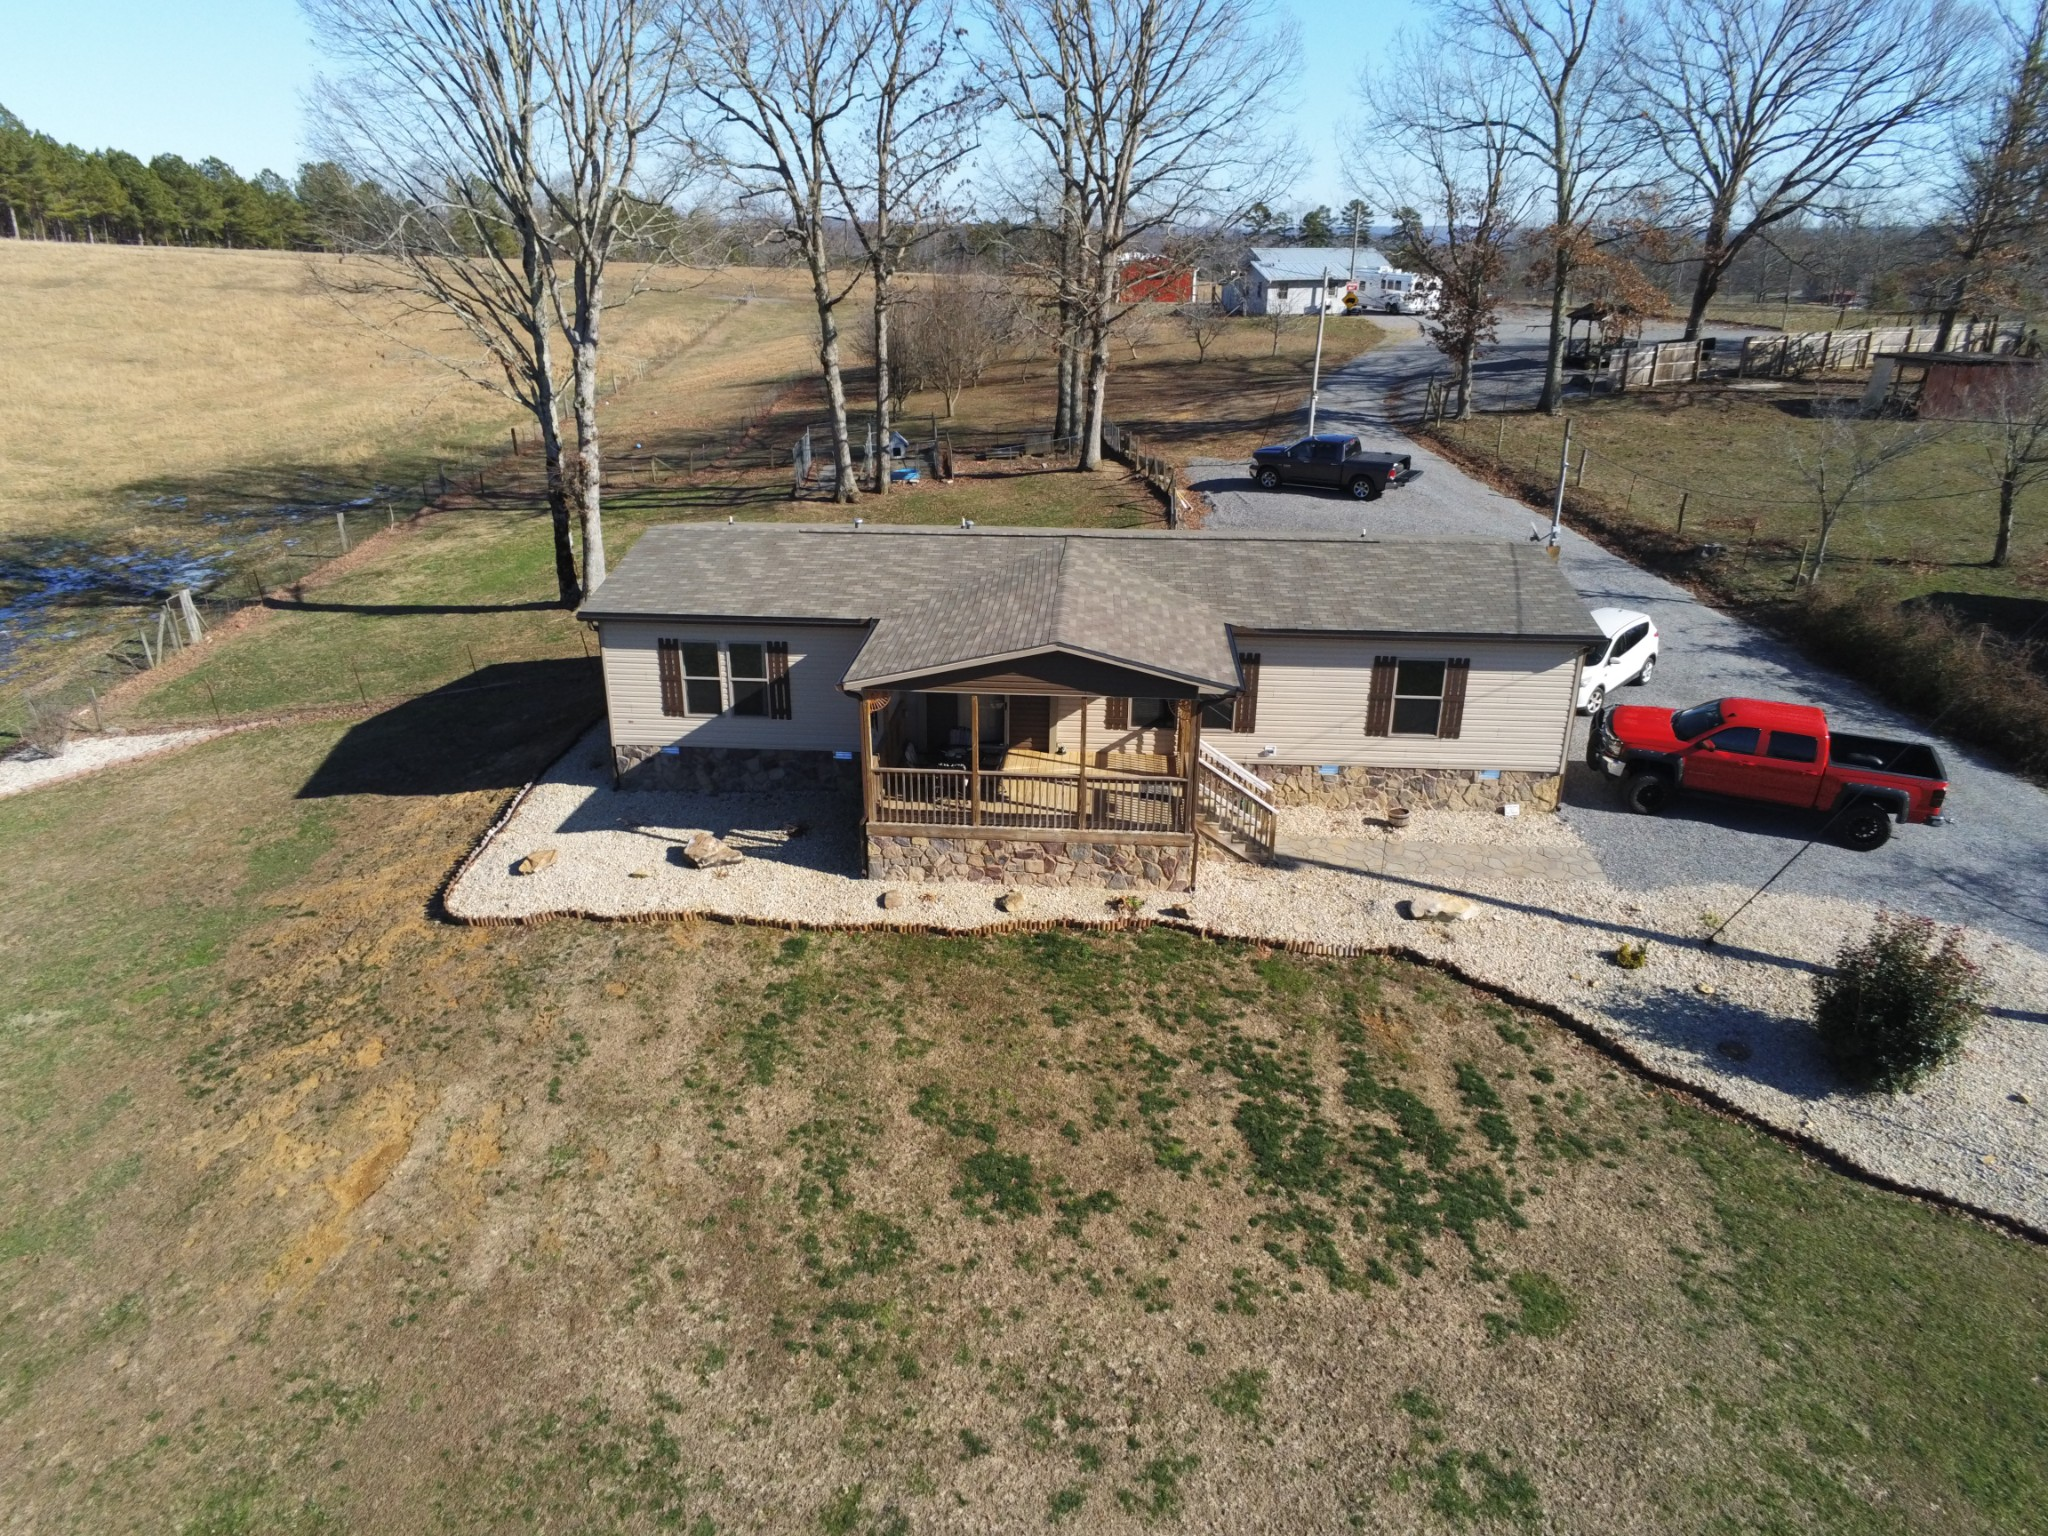 394 Dykes Hollow Rd, Tracy City, TN 37387 - Tracy City, TN real estate listing